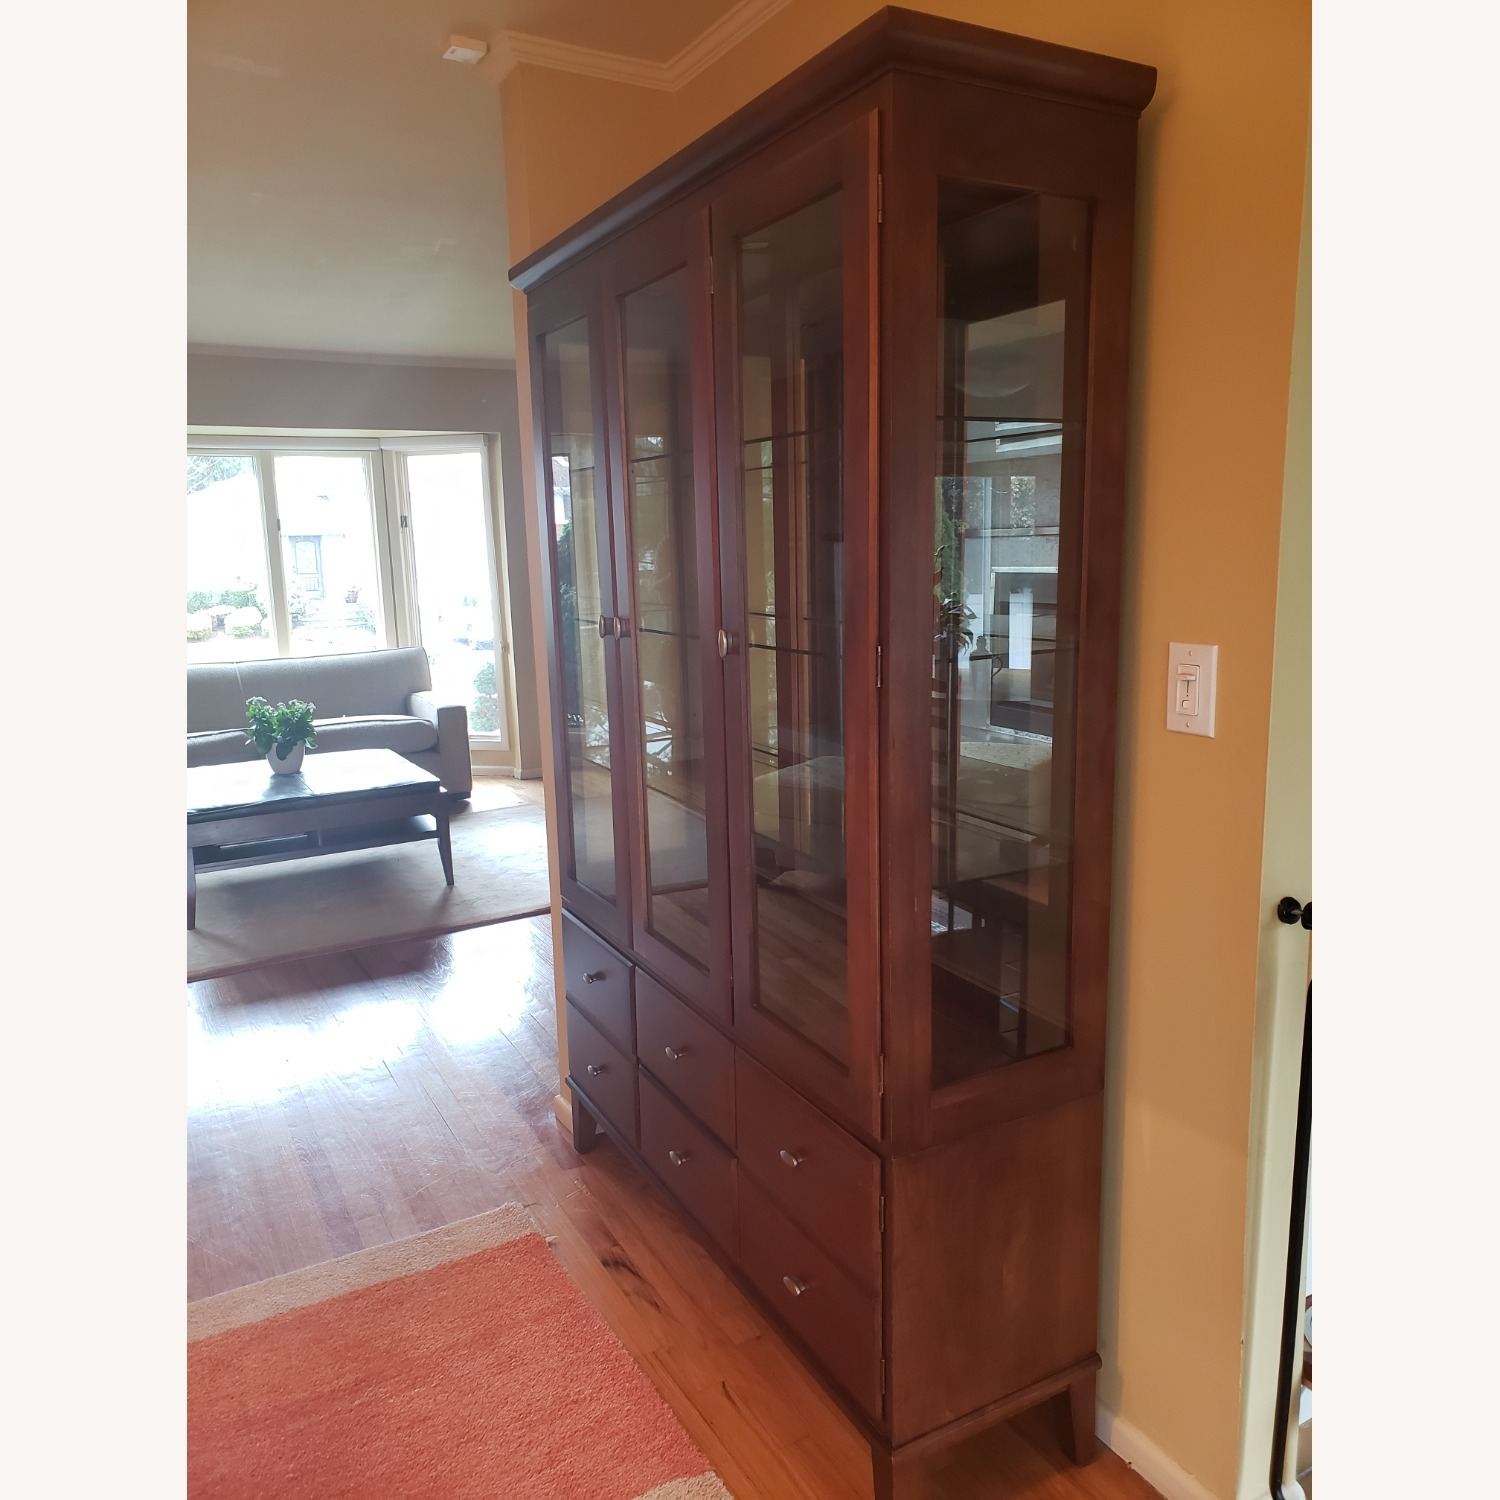 Ethan Allen Horizon China Cabinet with Lights - image-1